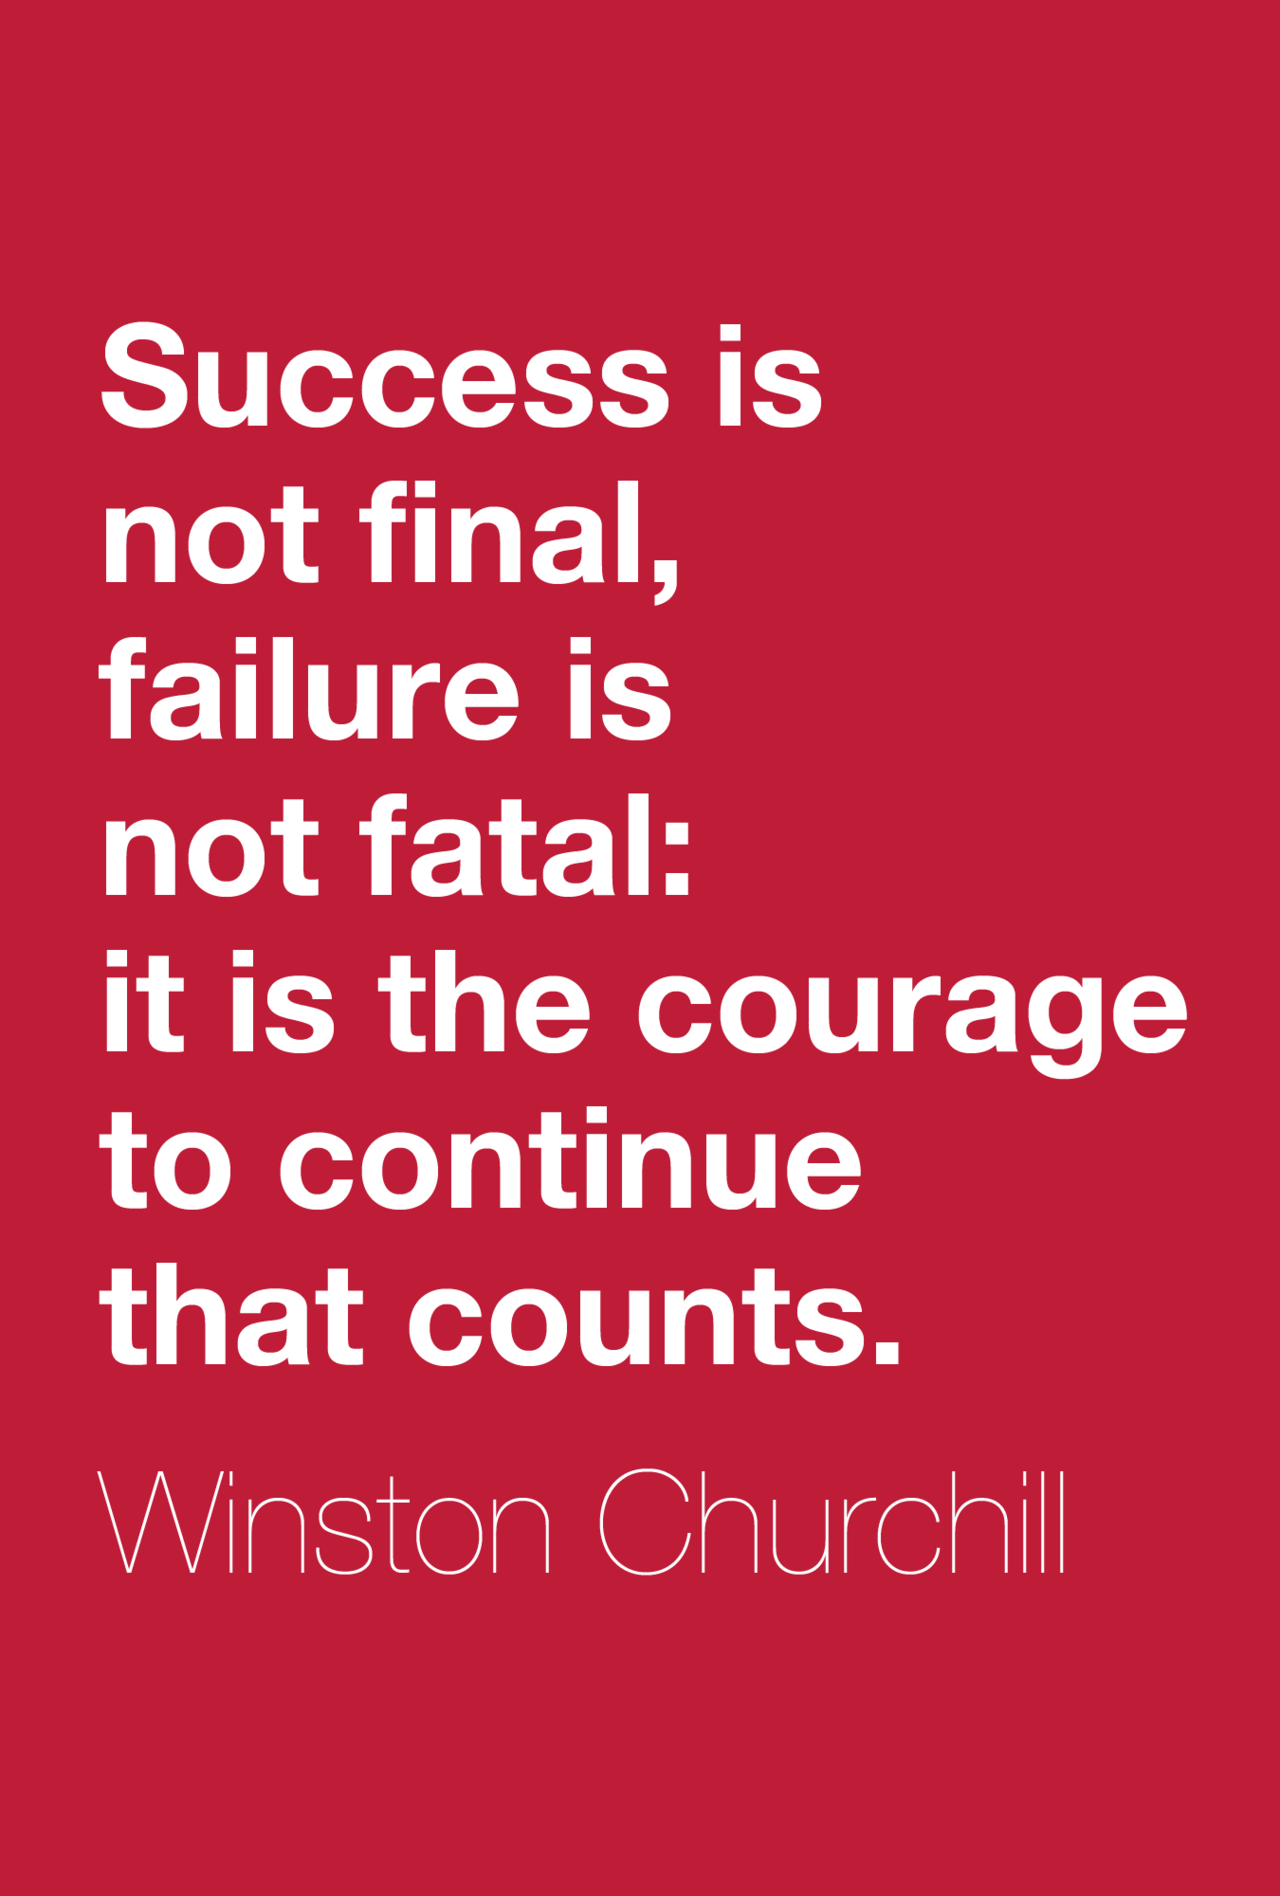 Finals Quotes Quotes Motivation Churchill  Financial Inspiration  Pinterest